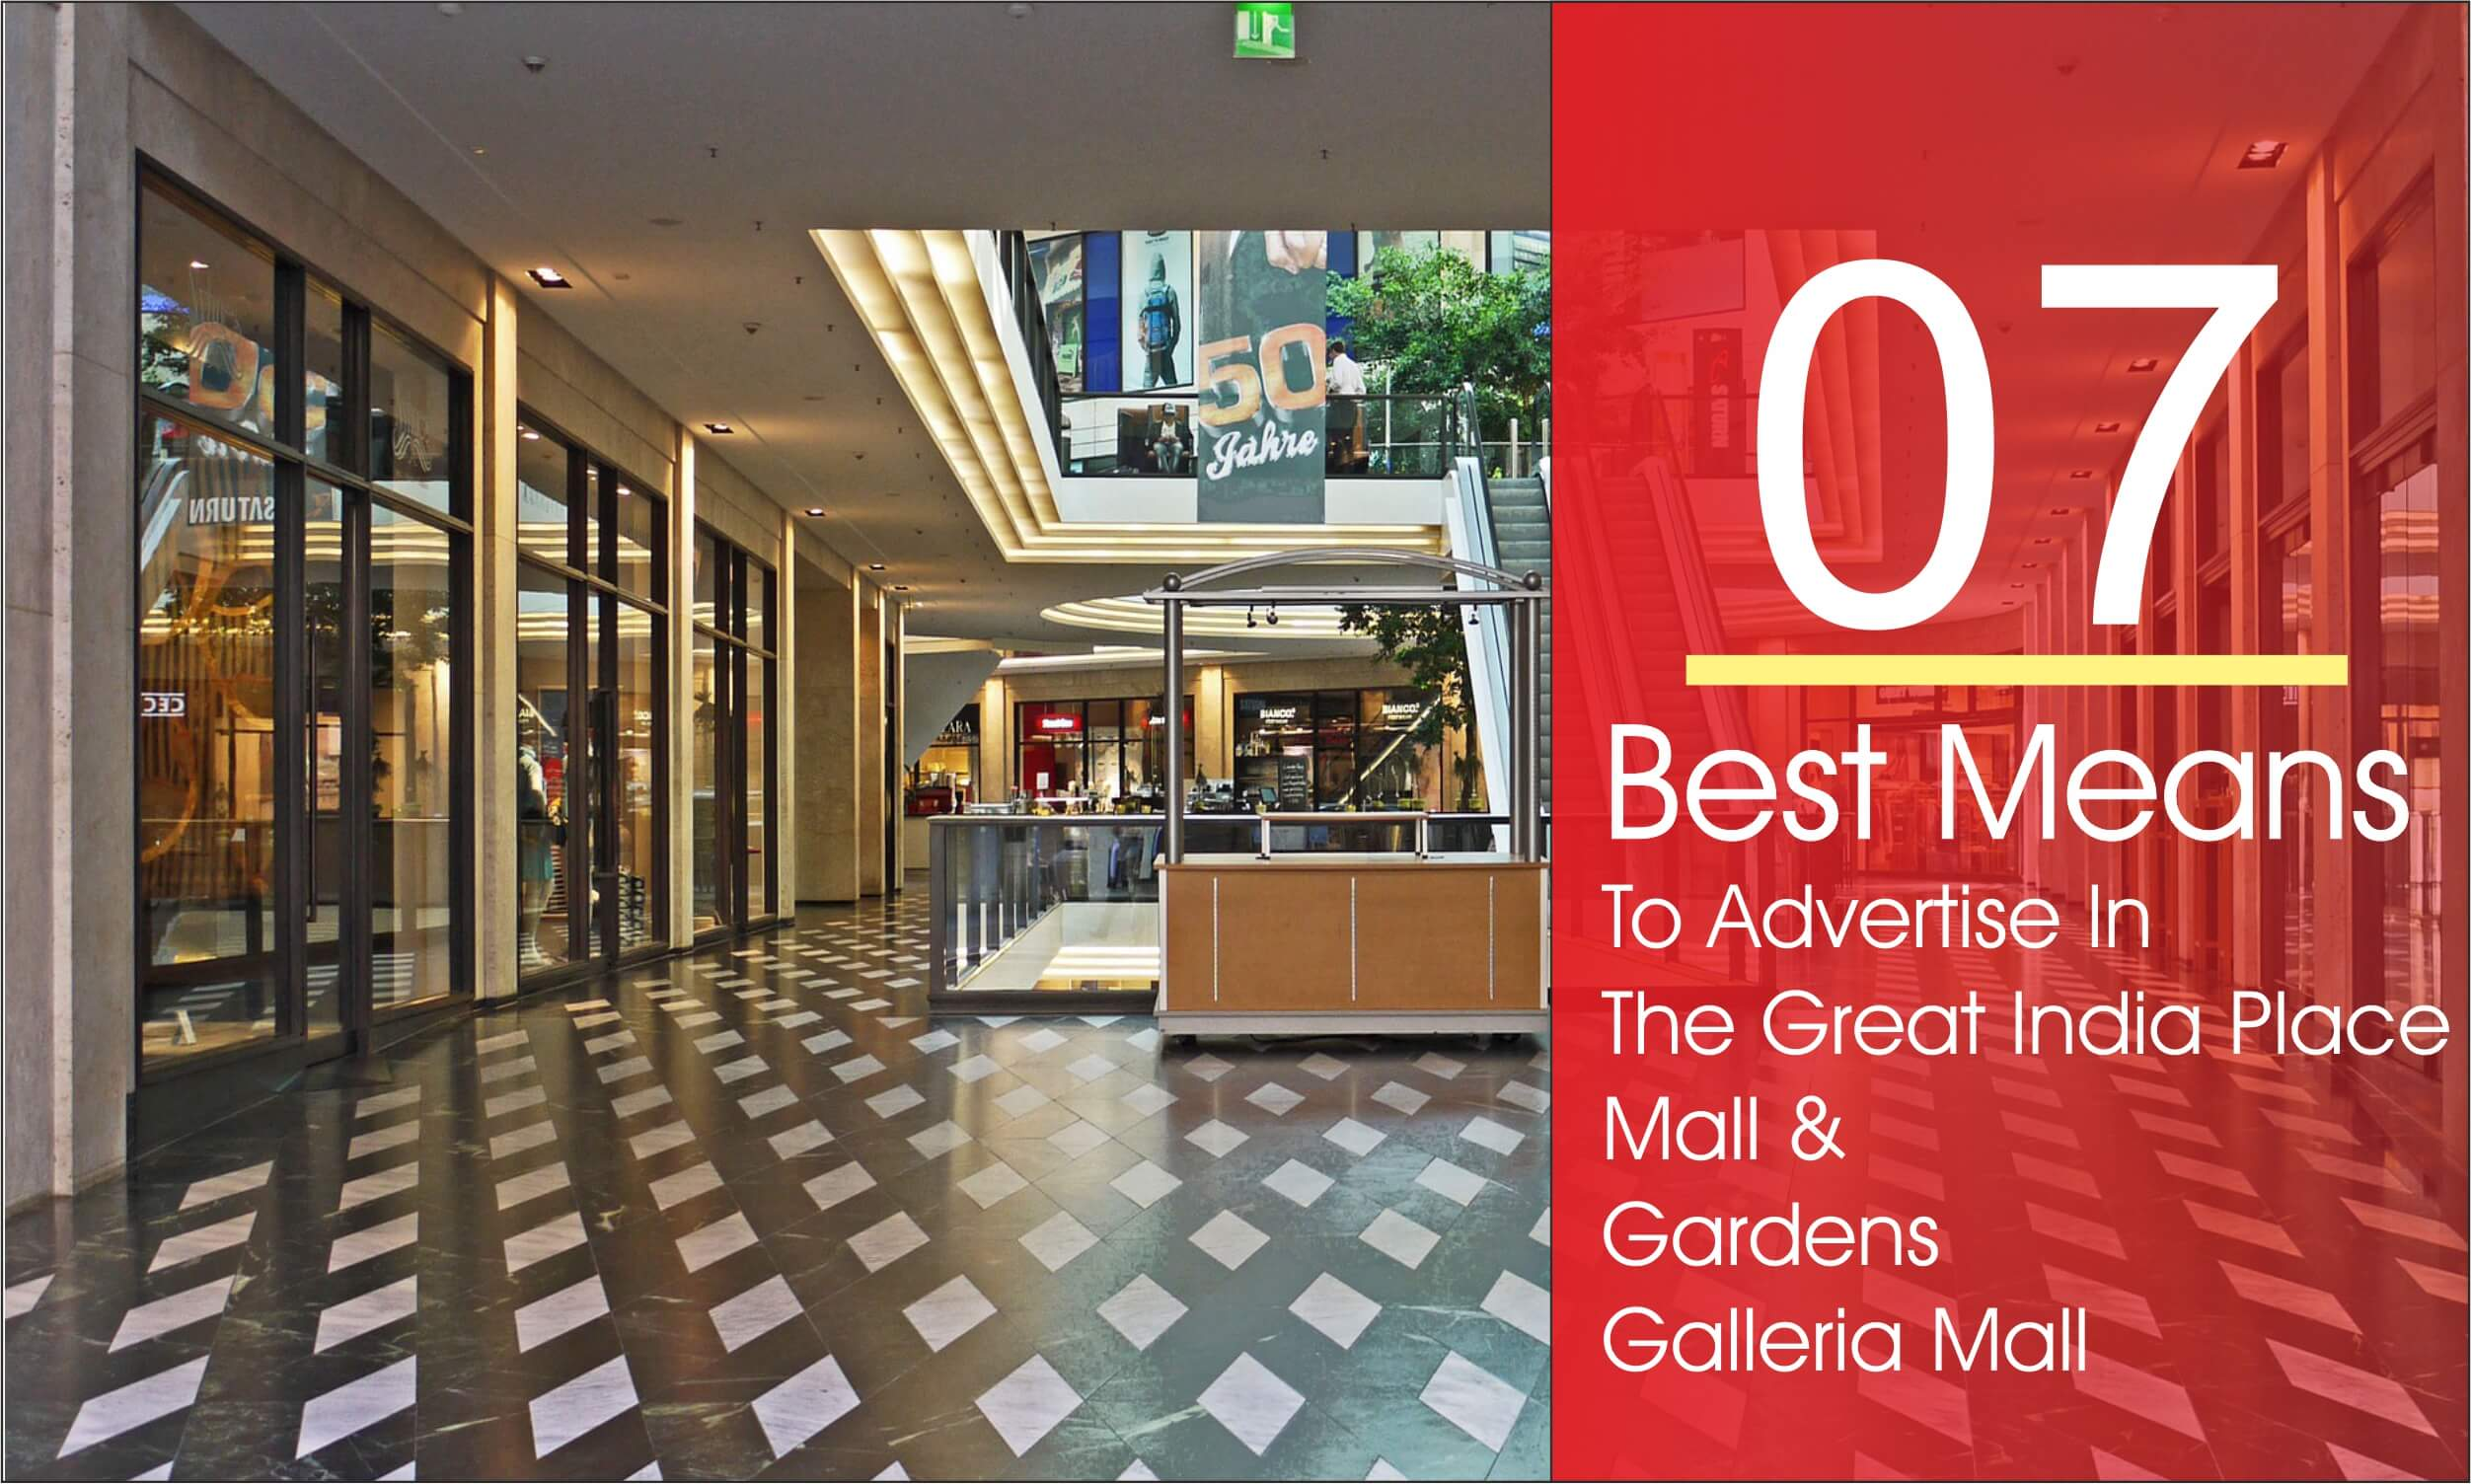 7 Best Means to Start your Brand Advertising in The Great India Place Mall (GIP) and Gardens Galleria